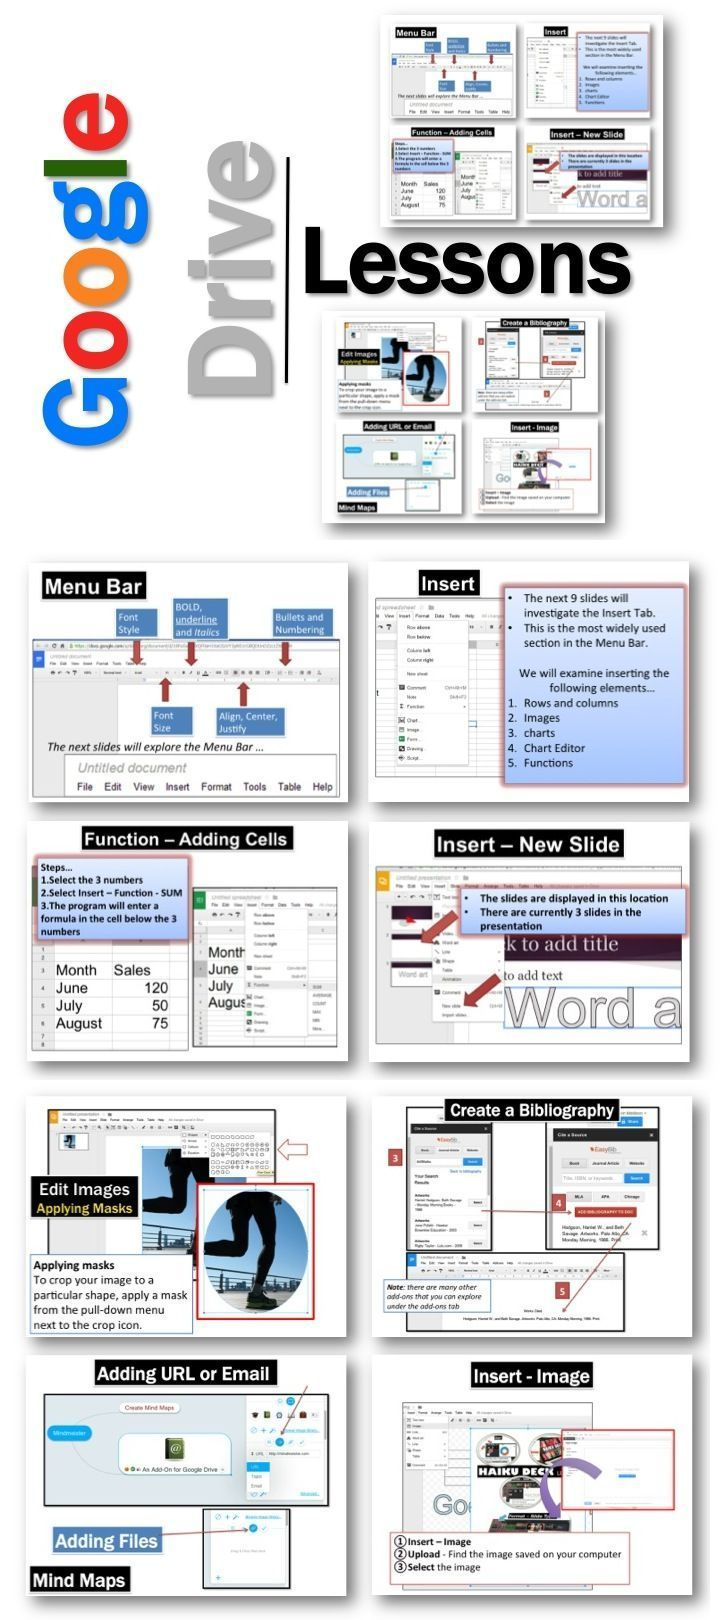 These lessons contains screen shots, activities, marking schemes, tips and instructions for using Documents, Presentations, Spreadsheets, Drawings and Forms within Google Drive.